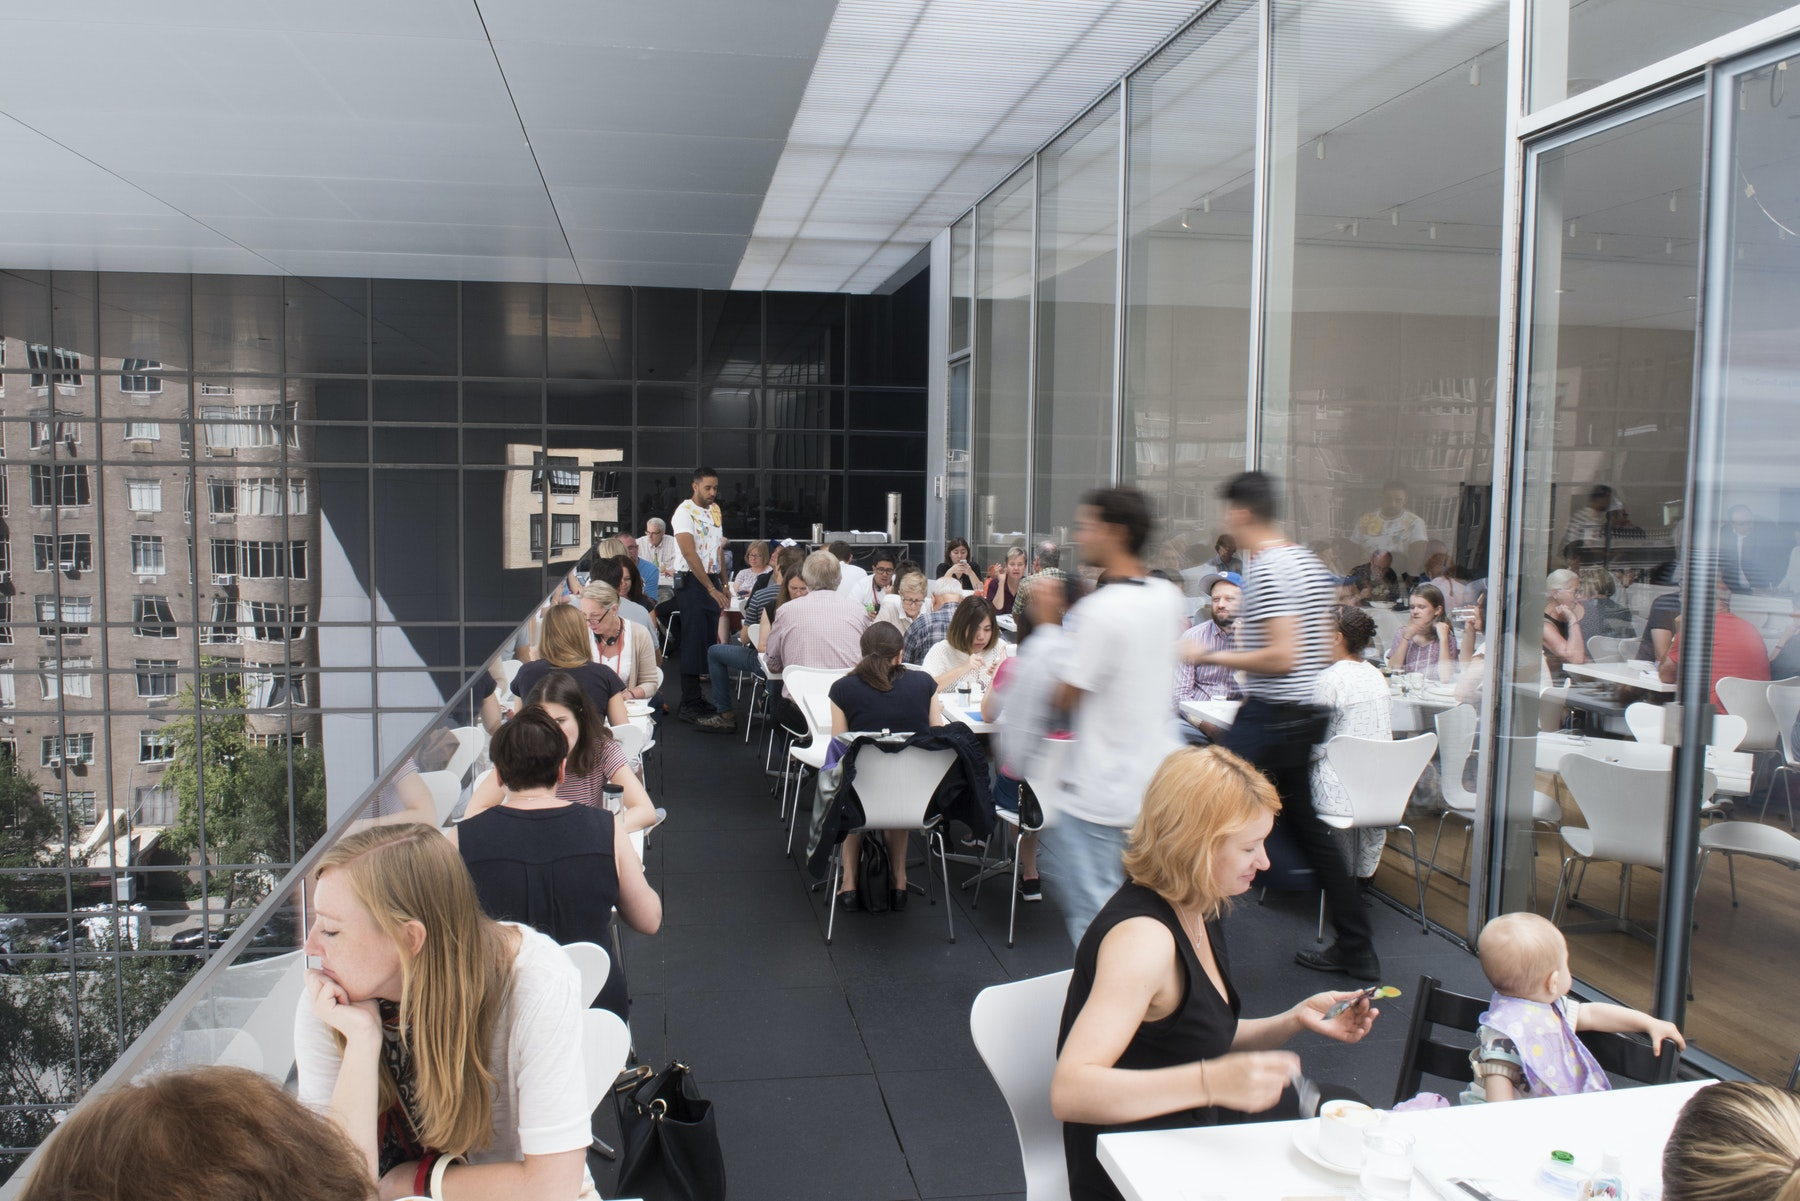 Cafes At Moma Union Square Hospitality Group